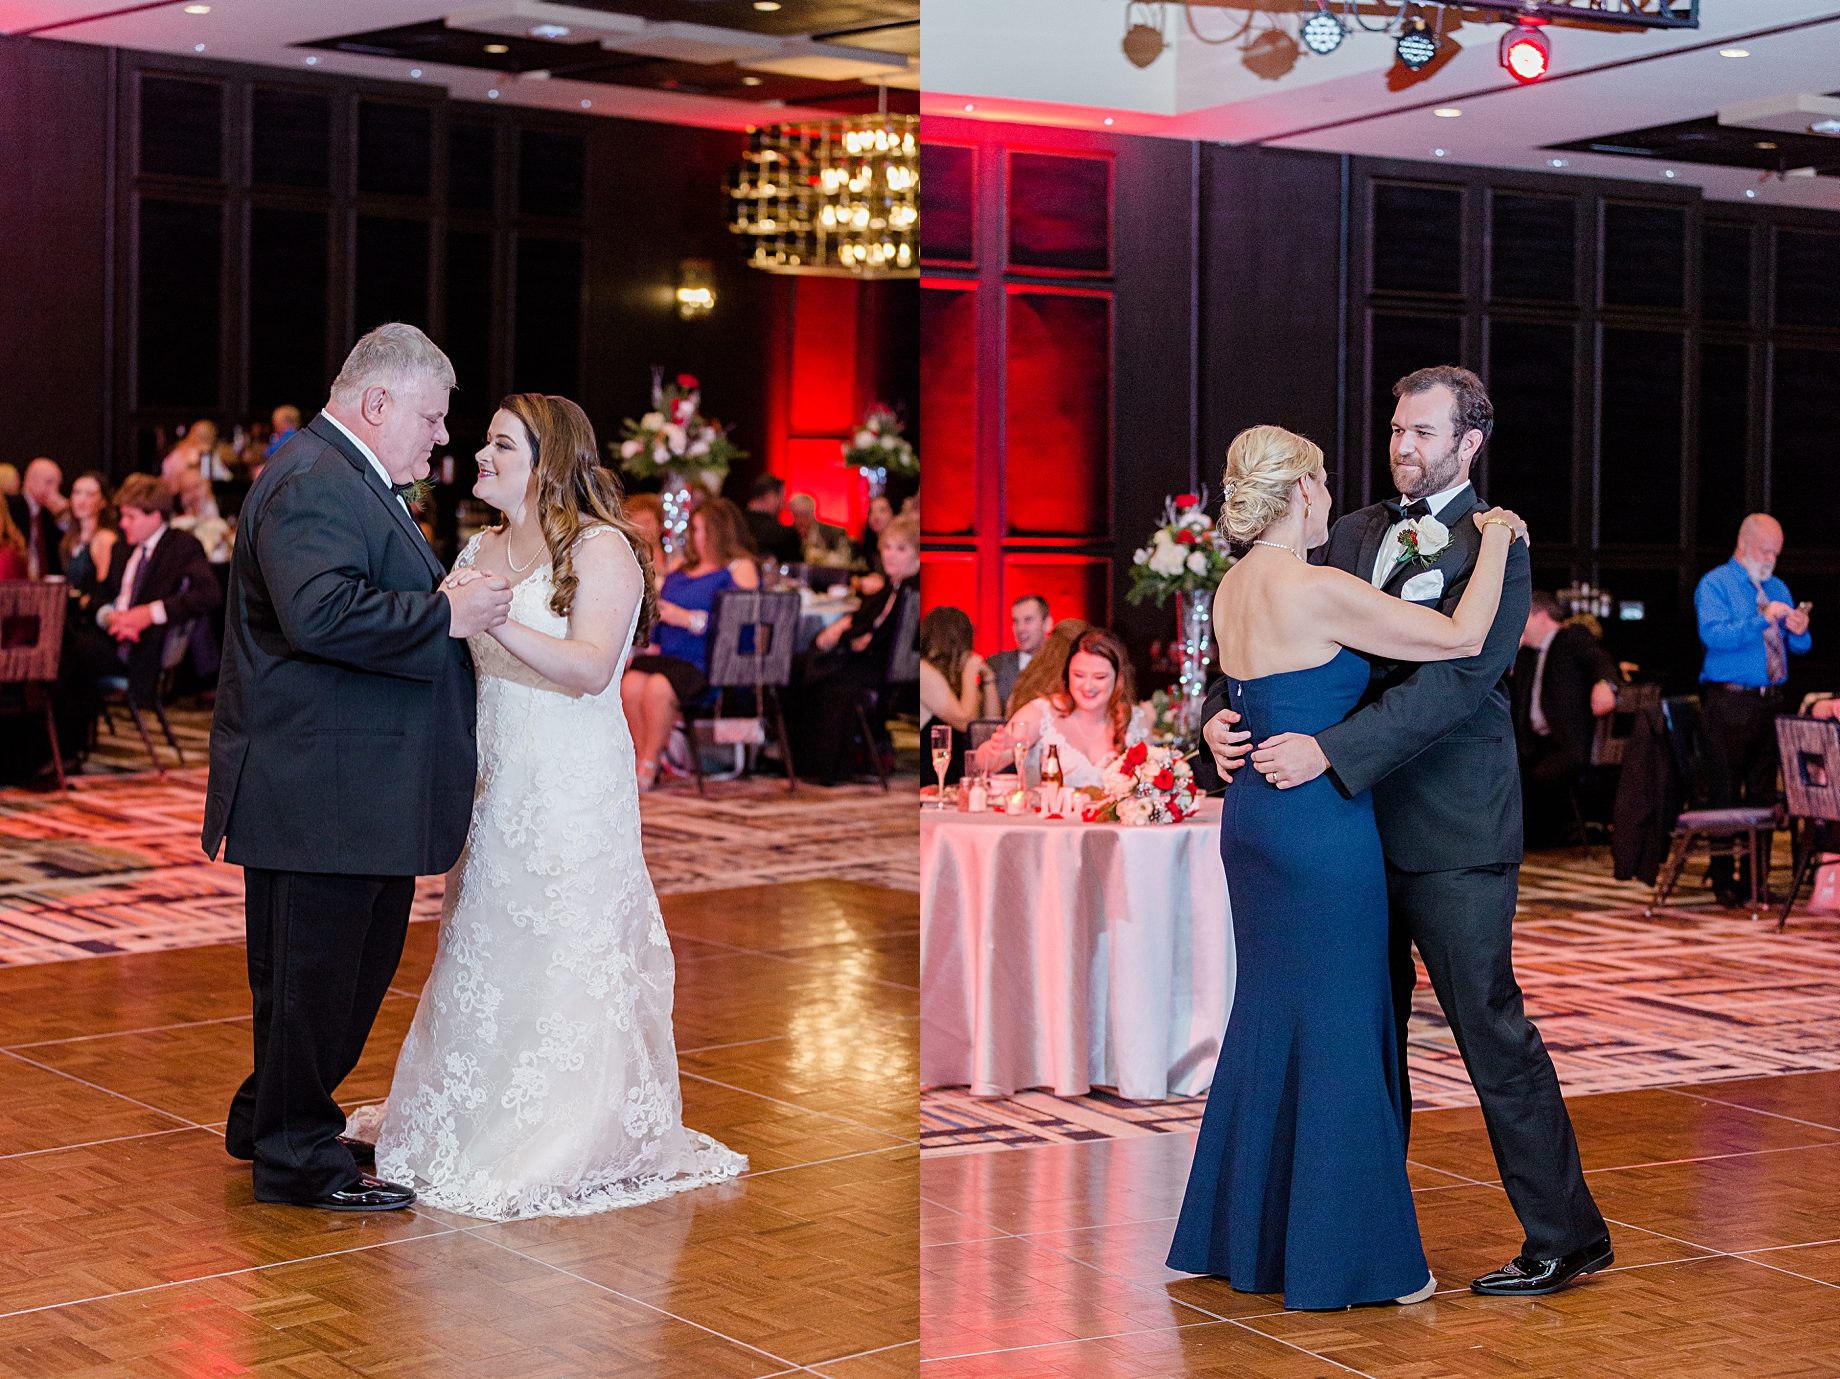 Sugarhouse Casino Wedding | Philadelphia Winter Wedding